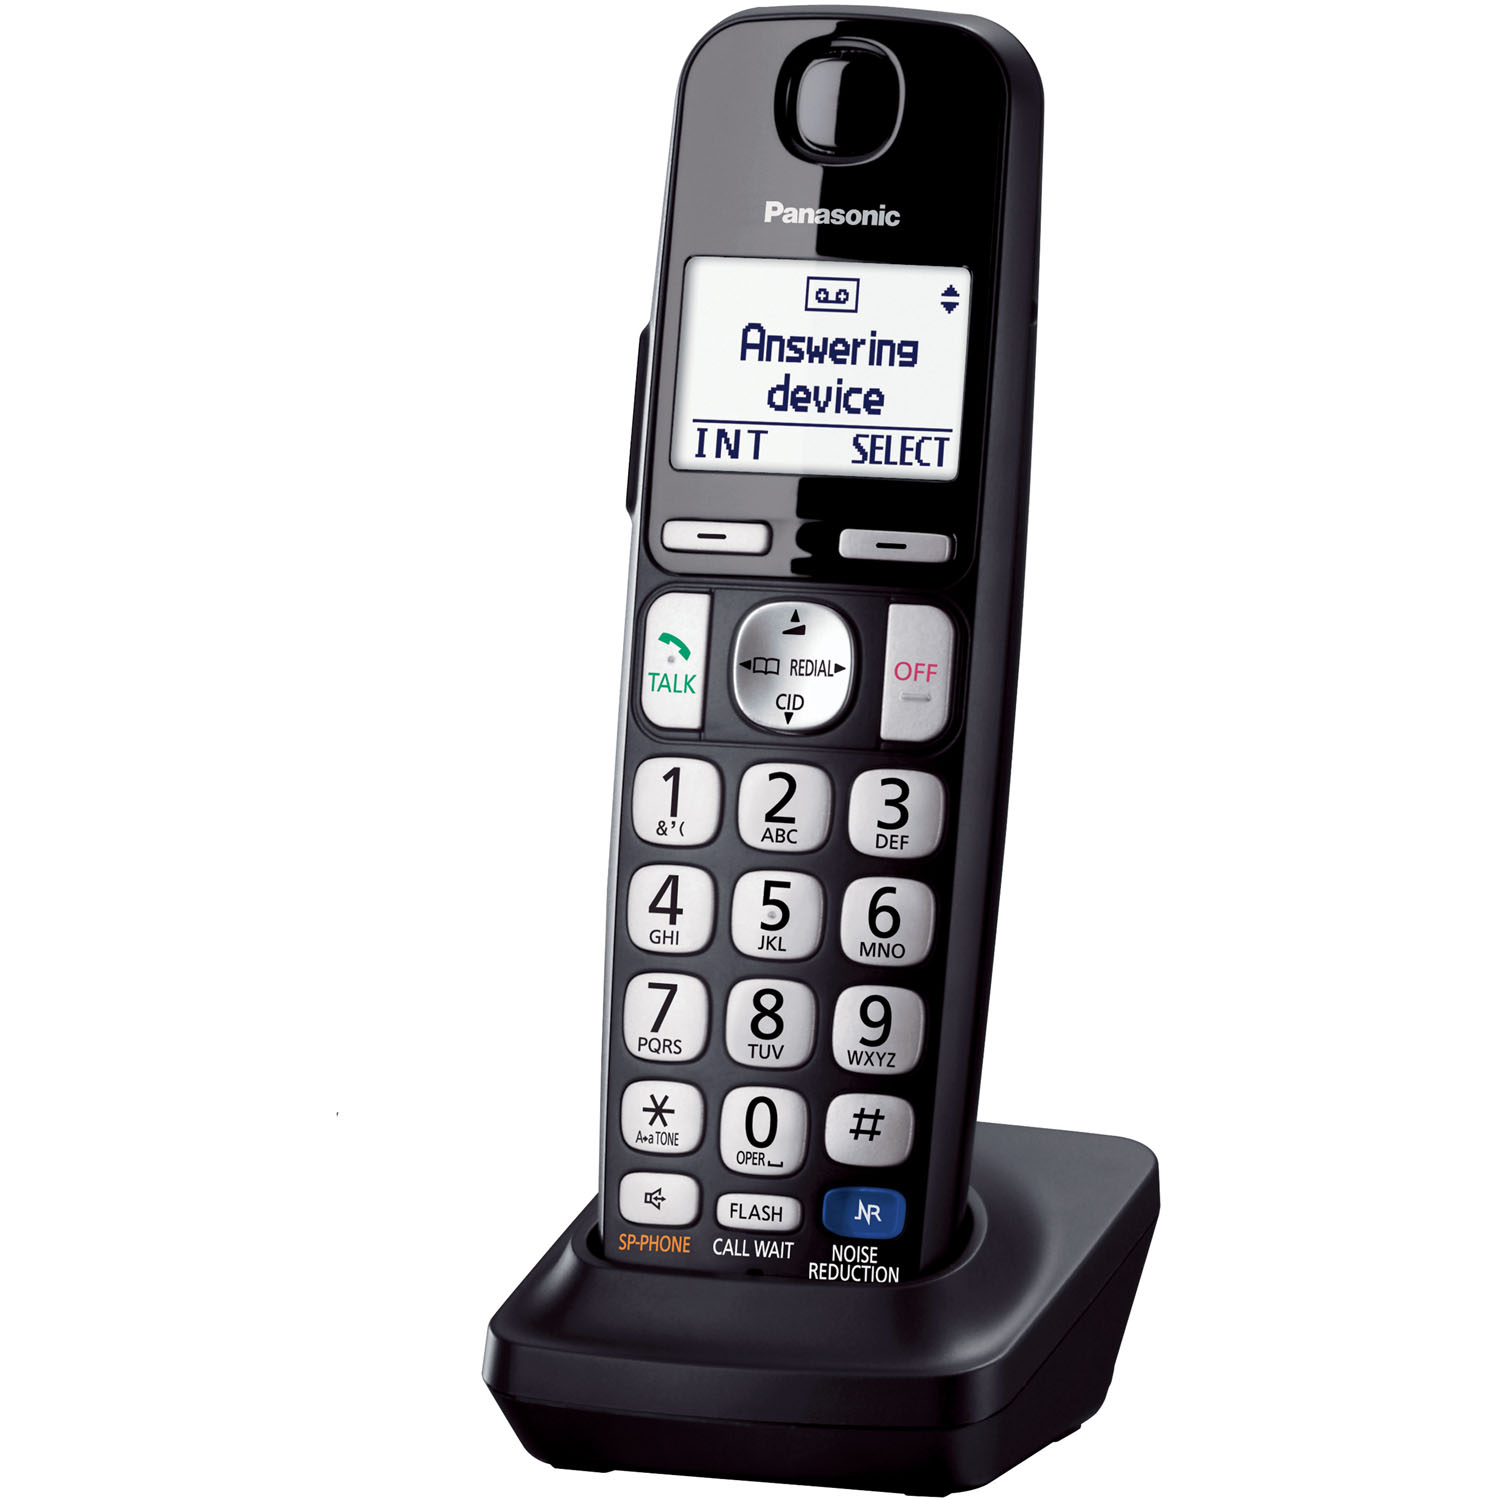 Panasonic Extra Handset for the KX-TGE210/ 230/ 240/ 260/ 270 Series of Phone Systems - Black